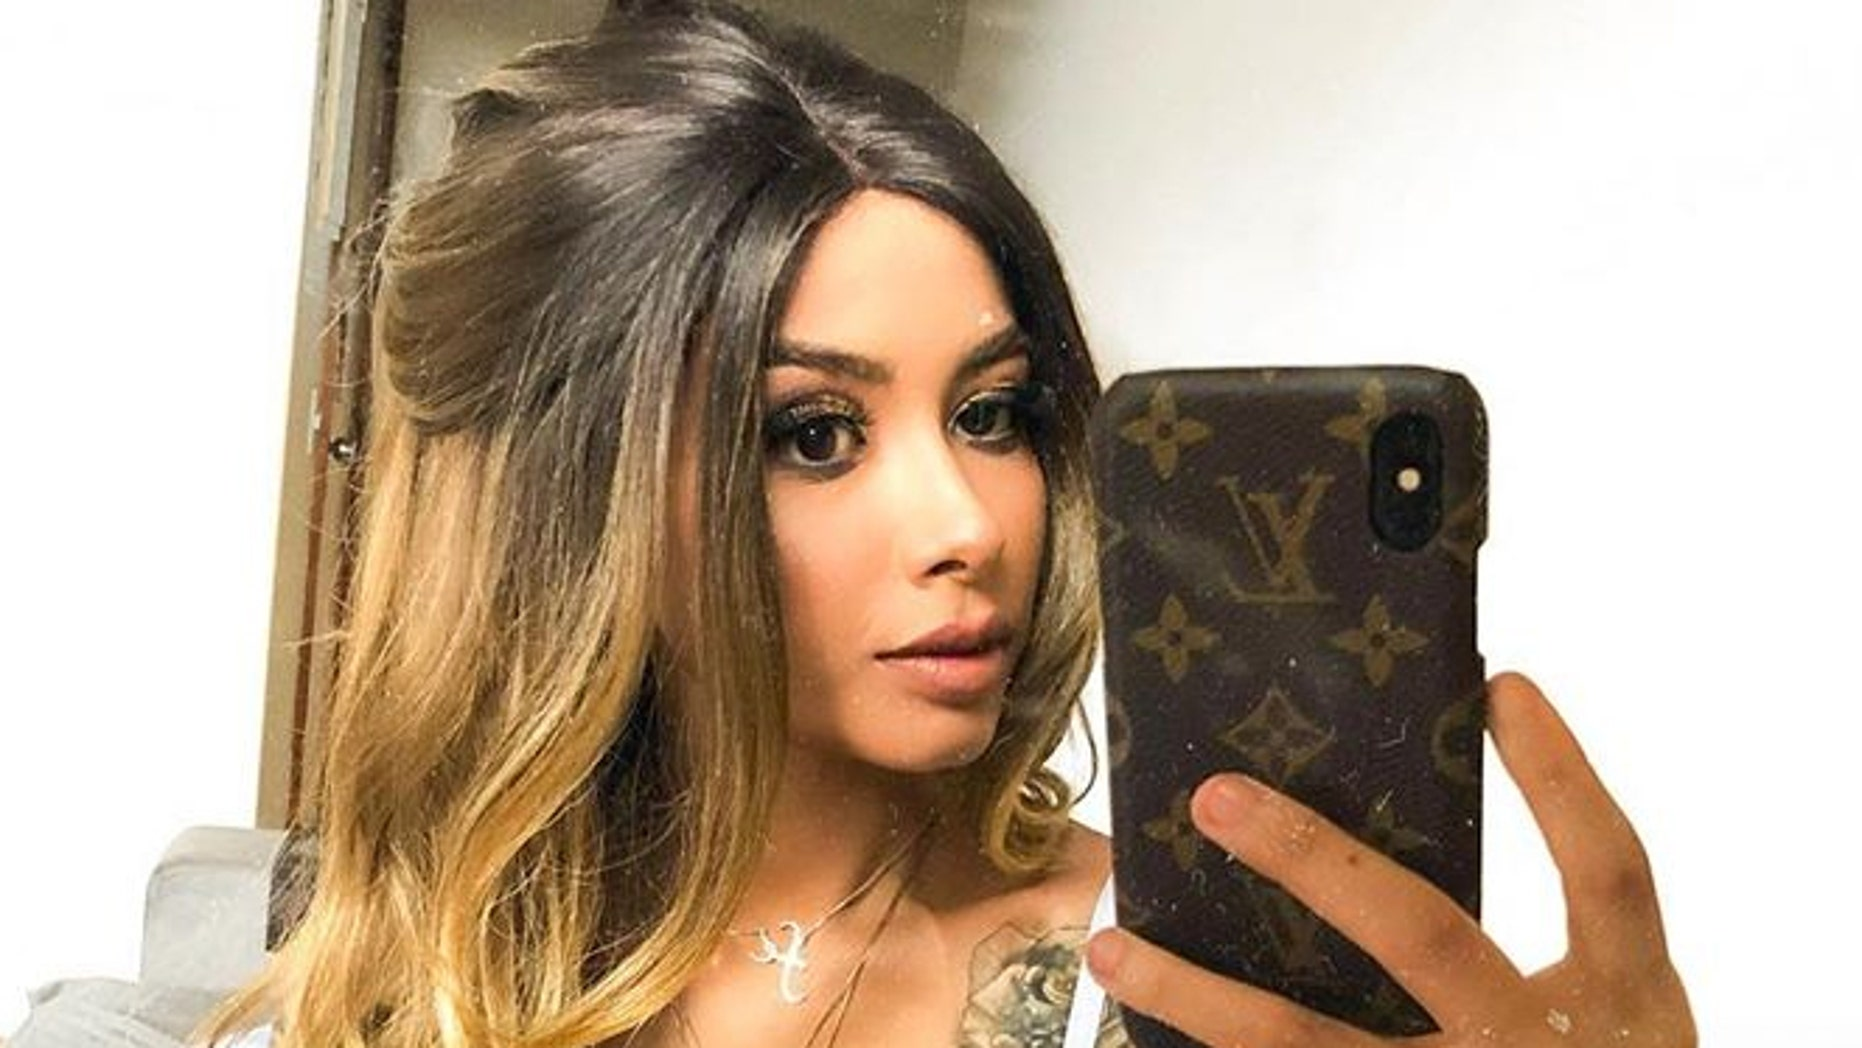 Nara Almeida, who documented and shared her stomach cancer battle with over 4.6 million followers on Instagram, died at age 24.